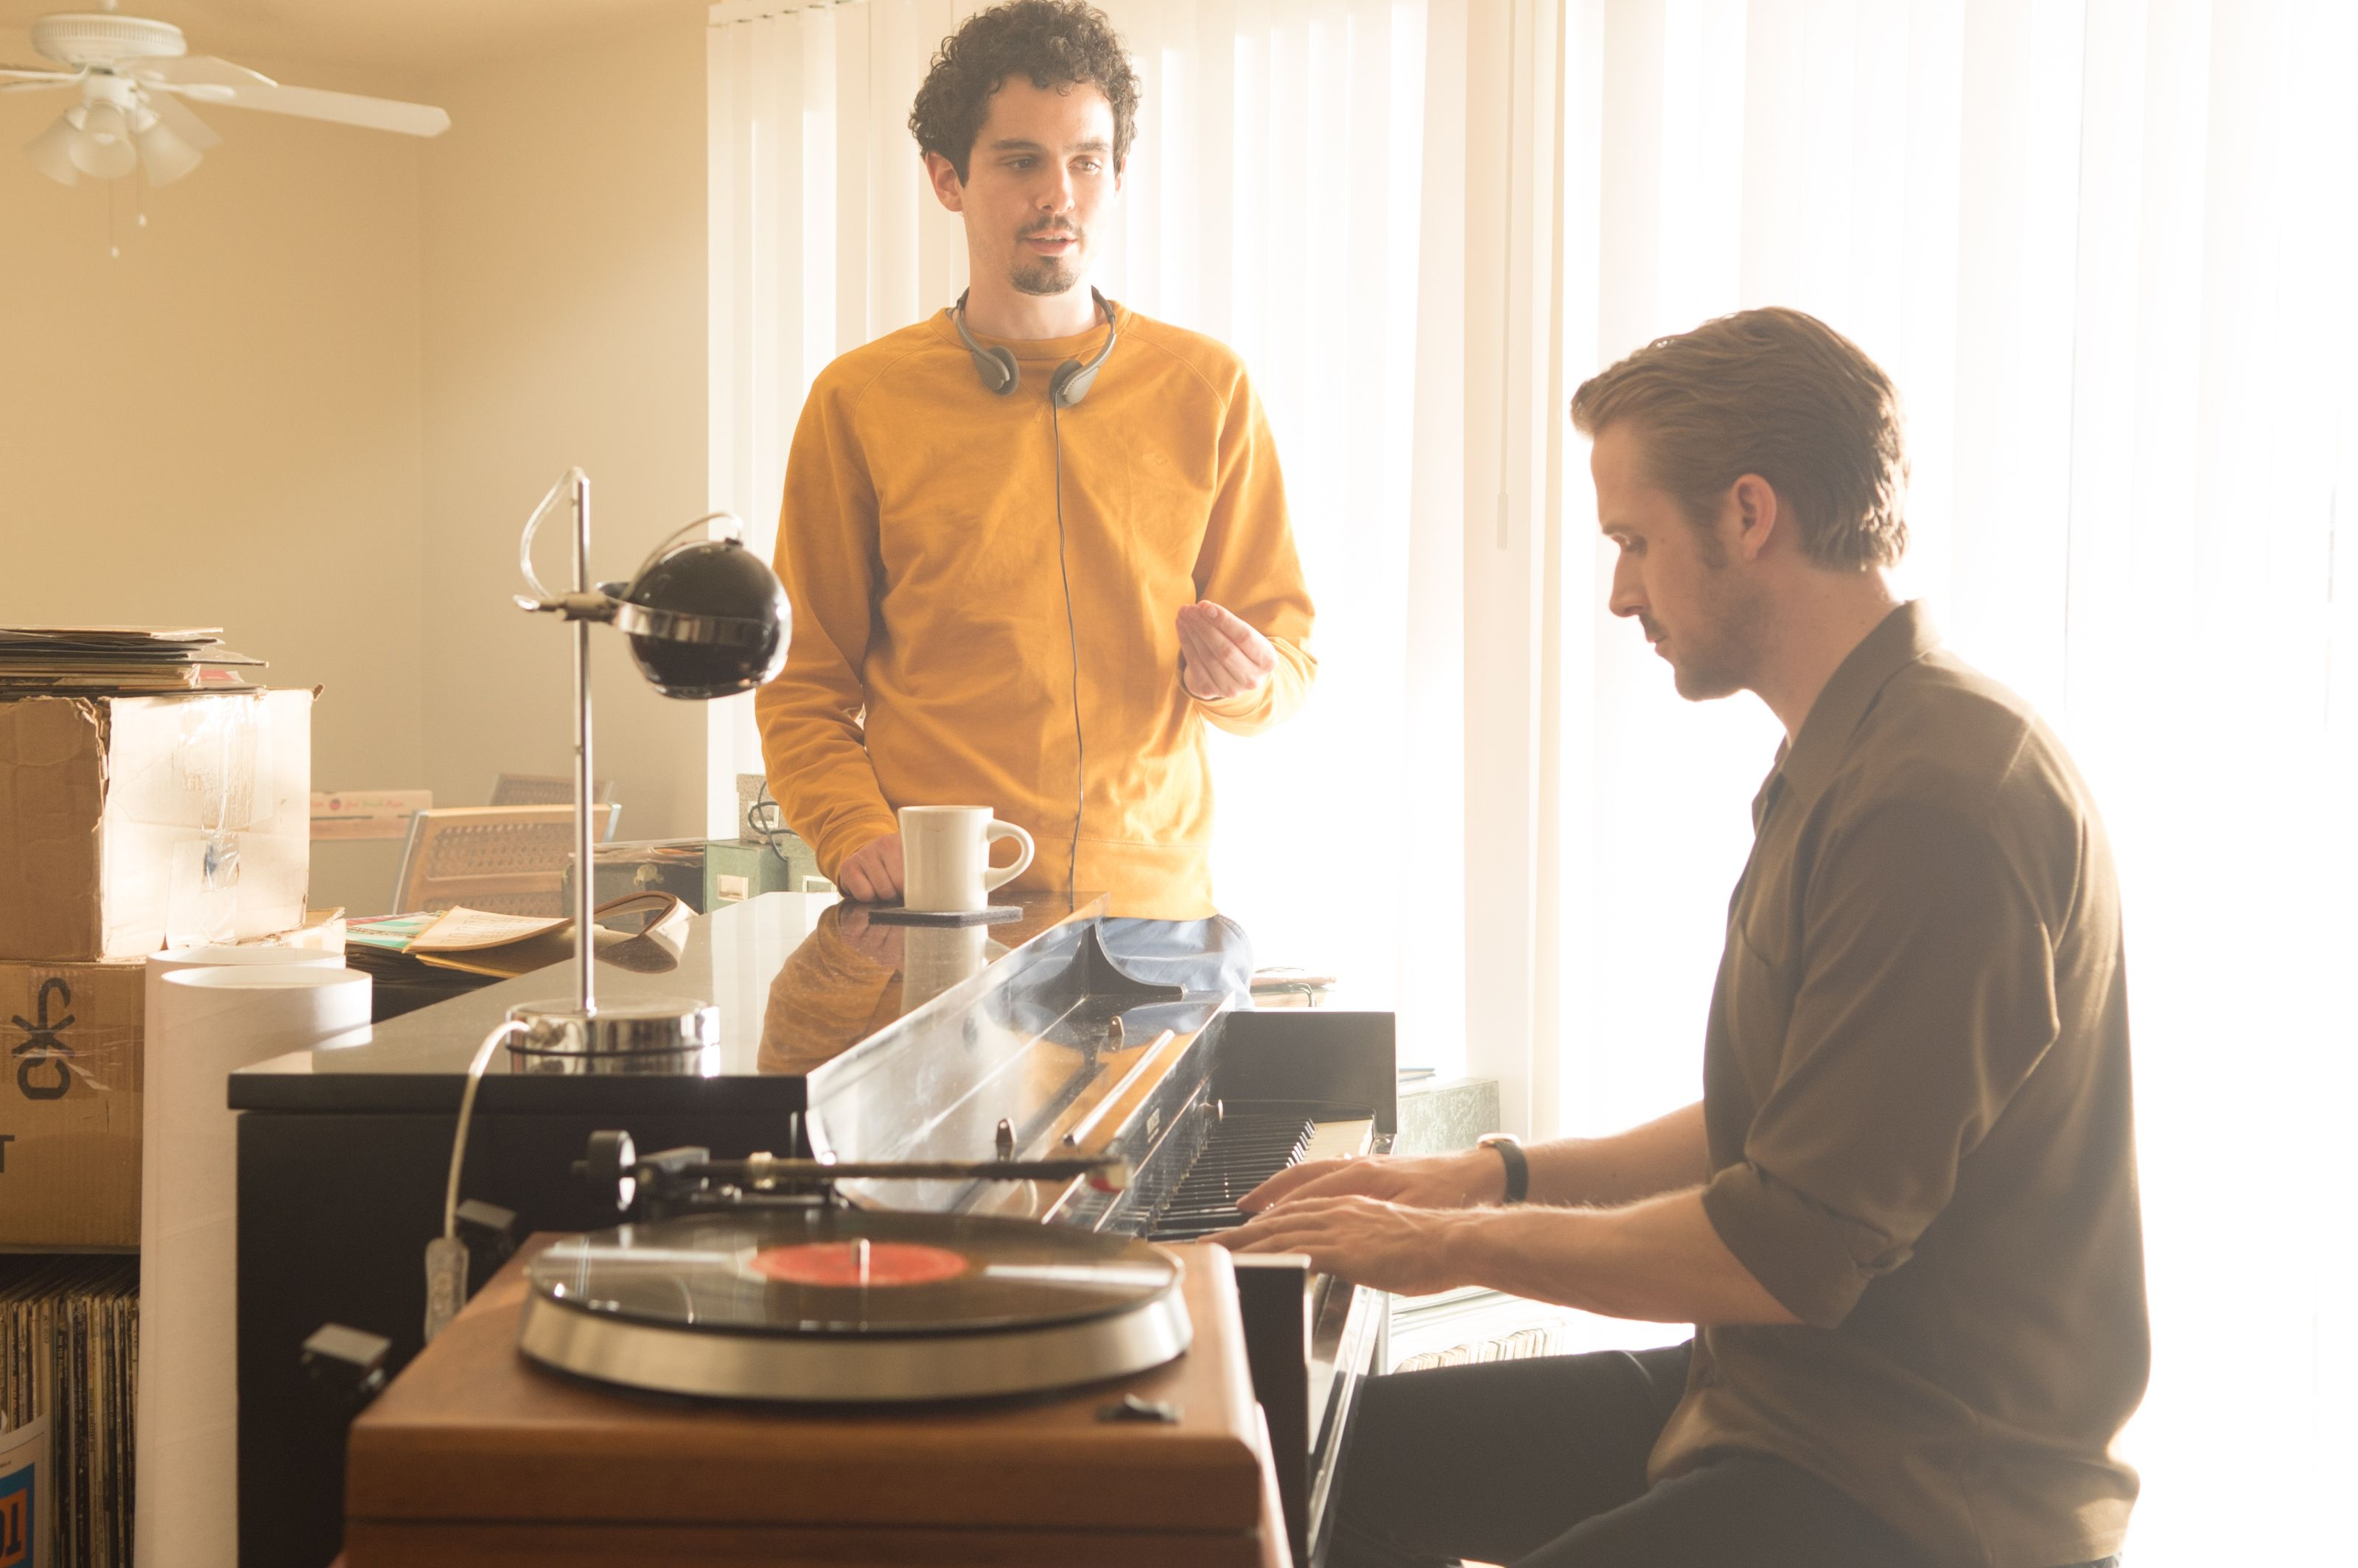 Netflix nabs 8-part musical series from 'La La Land' director